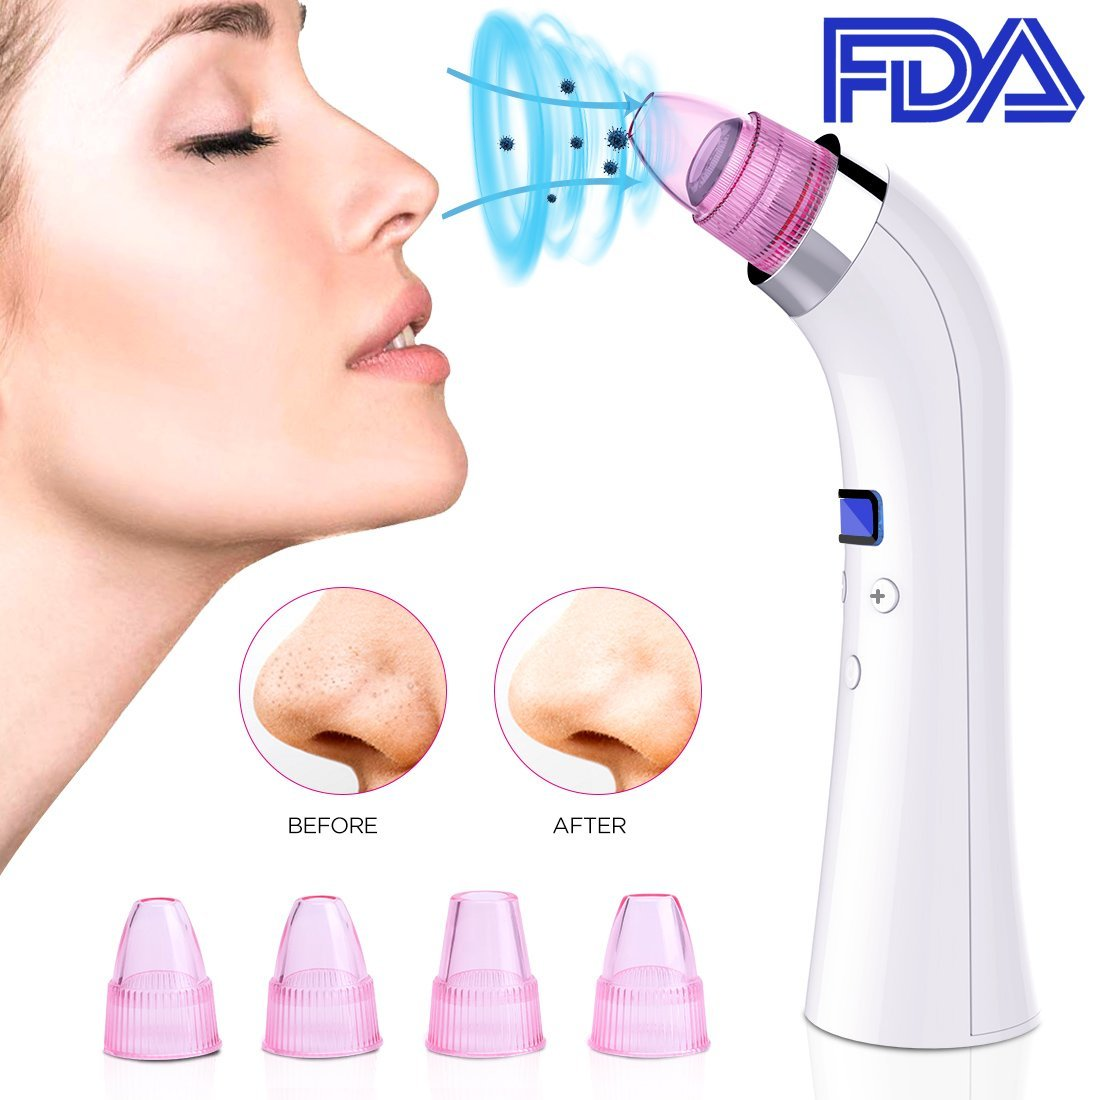 Blackhead Remover Pore Vacuum Machine Rechargeable Professional Portable Comedo Suction with LED Screen Removal Extractor Tool for Facial Skin Treatment(White) LunaLife